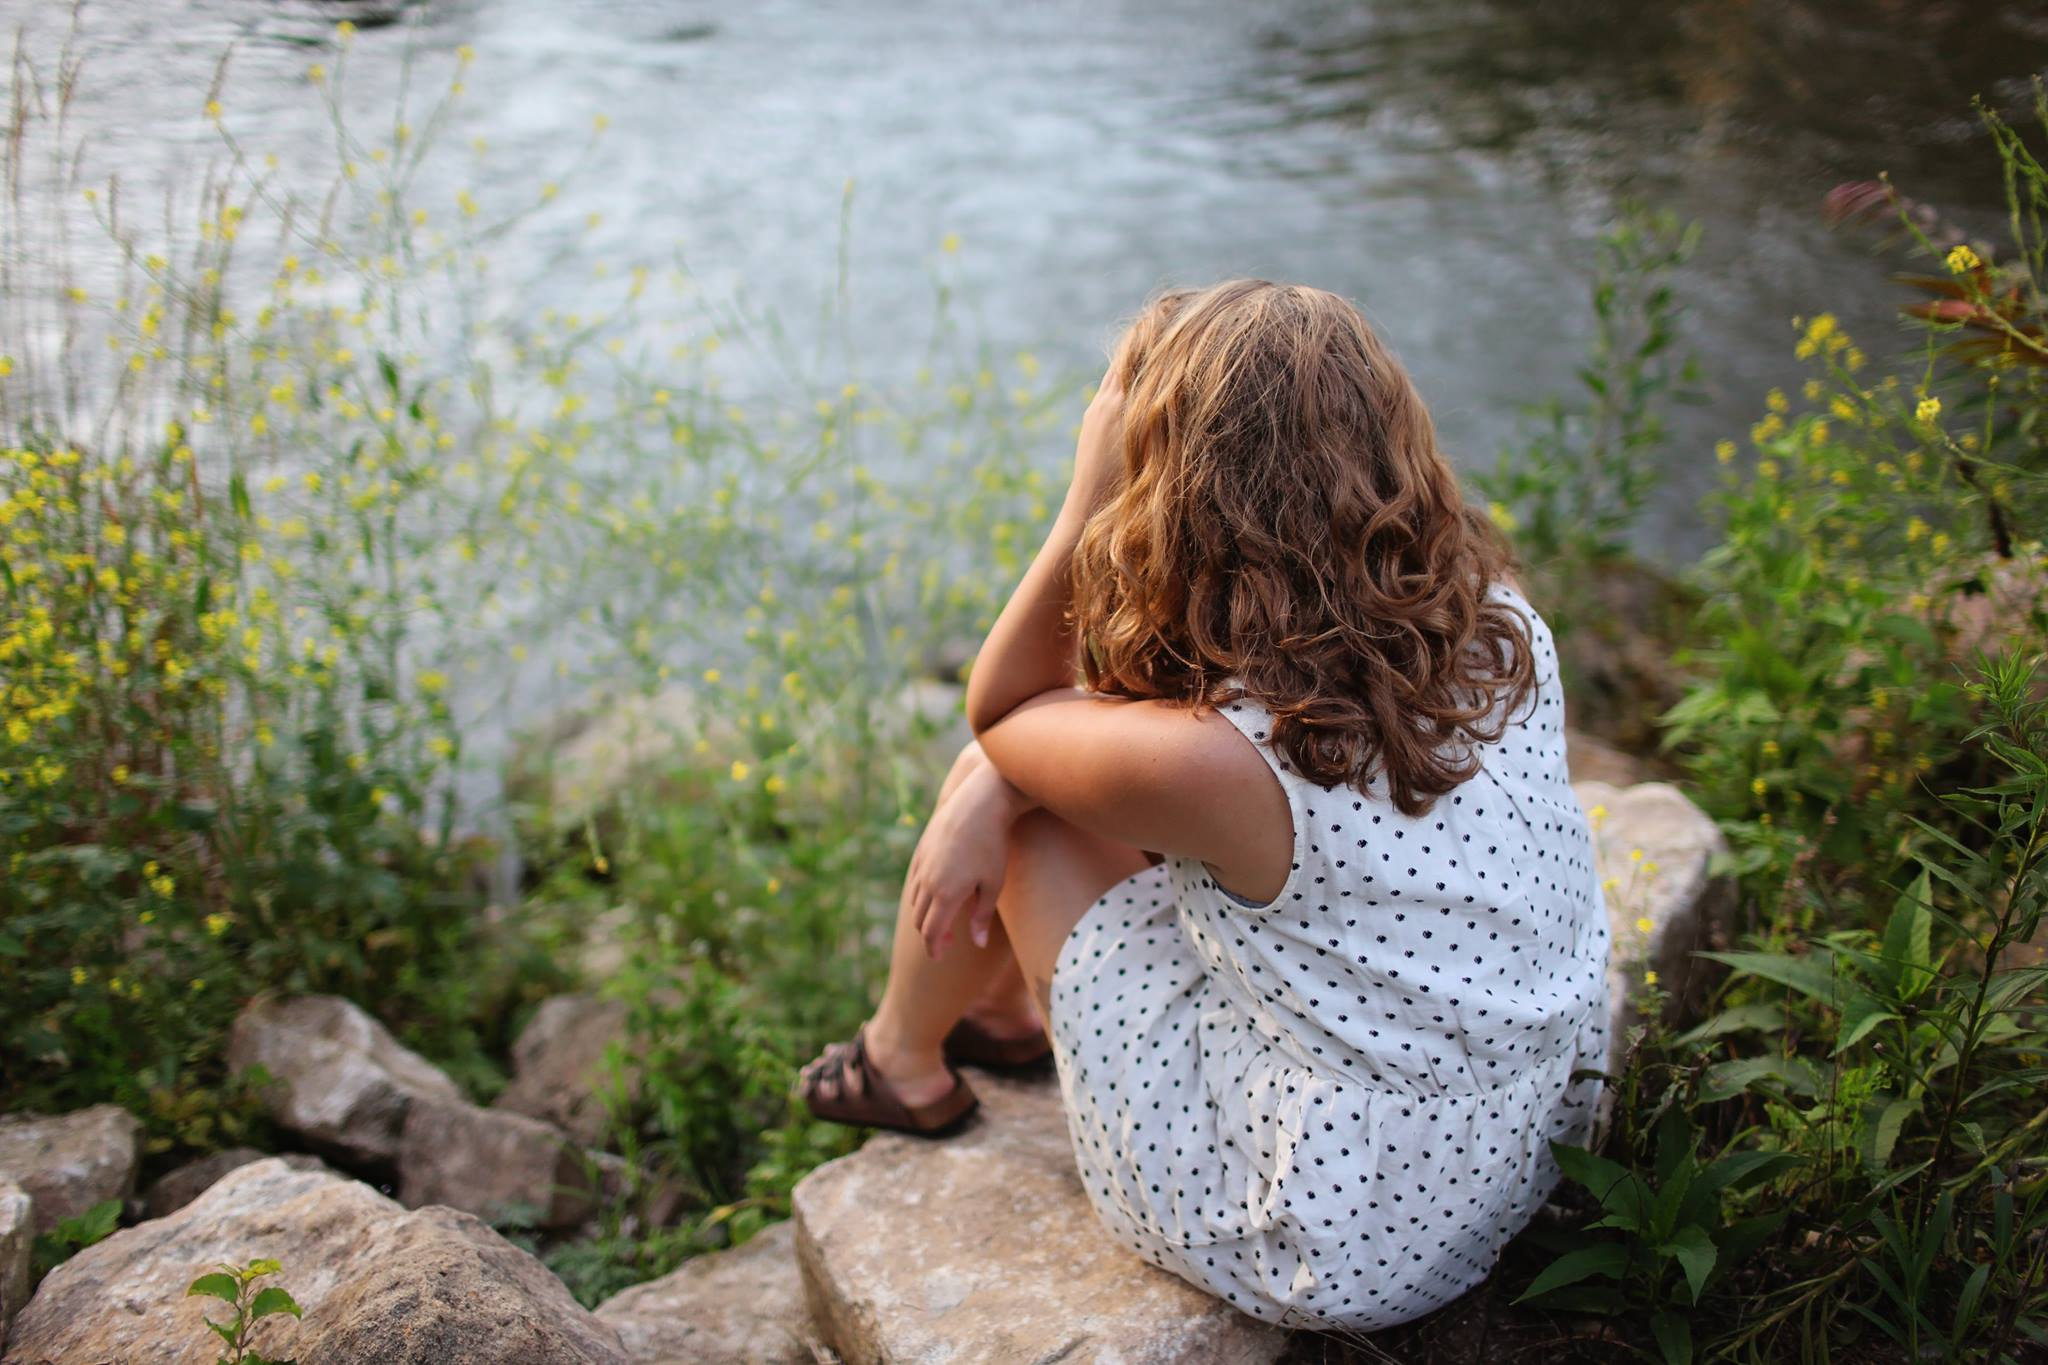 adluts after child sexual abuse